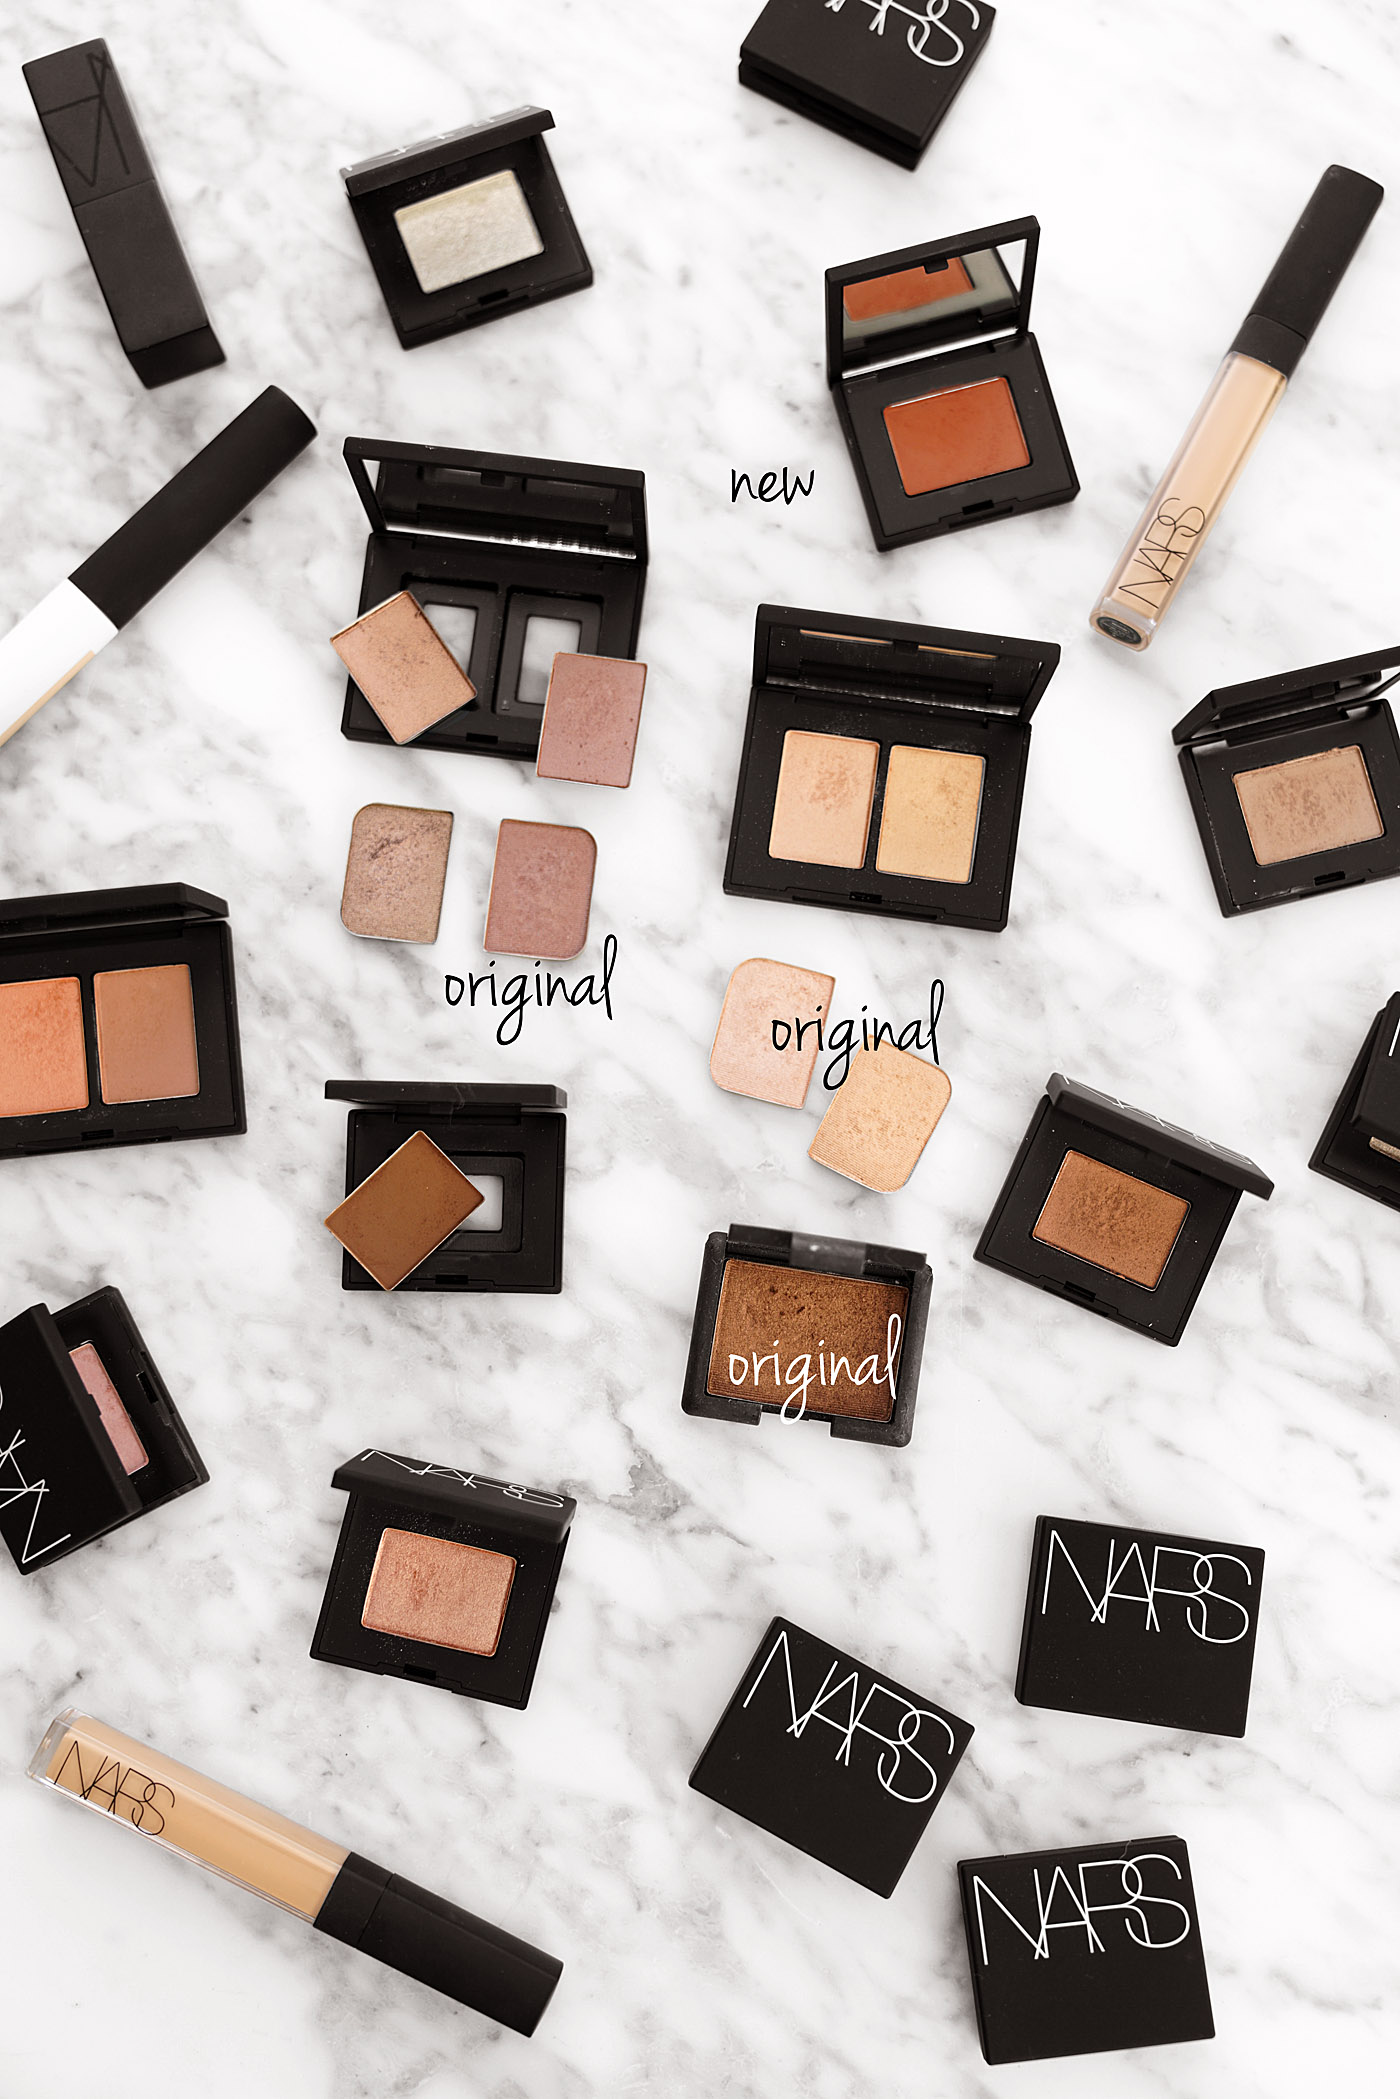 NARS Eyeshadow Single and Duo relaunch vs original pans